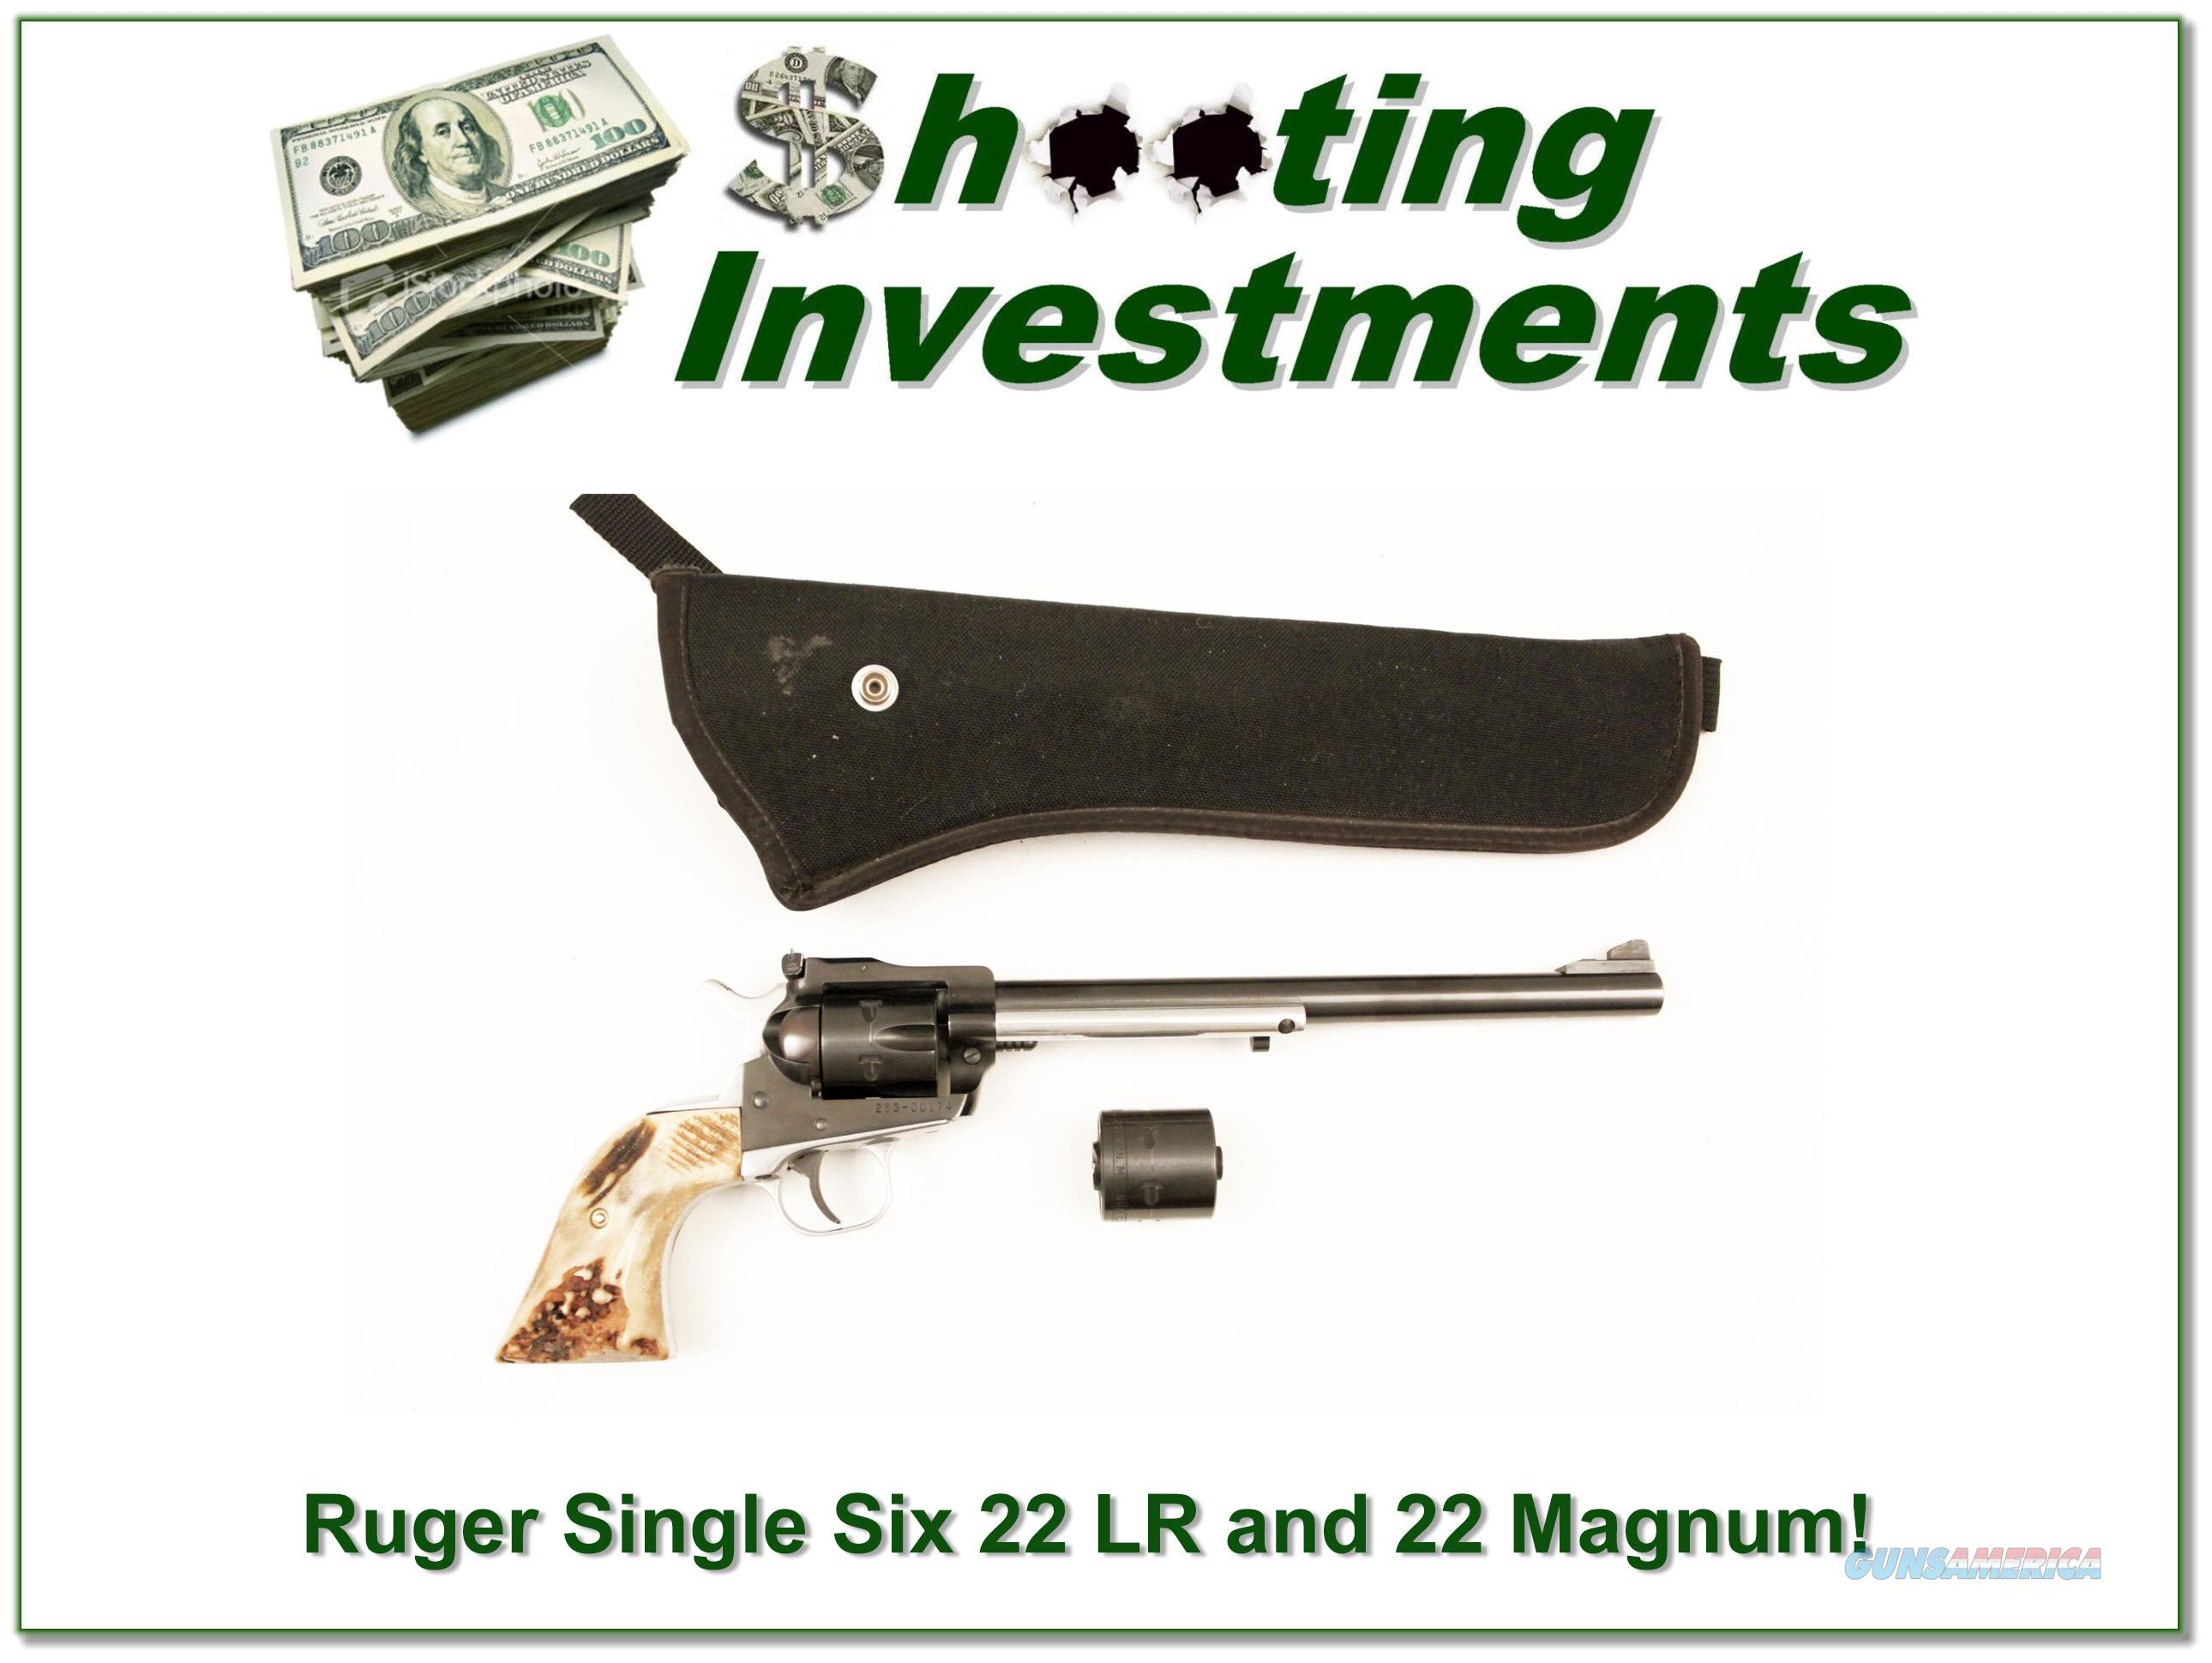 Ruger Single Six 9.5 in 22LR and 22 Magnum cylinders  Guns > Pistols > Ruger Single Action Revolvers > Single Six Type